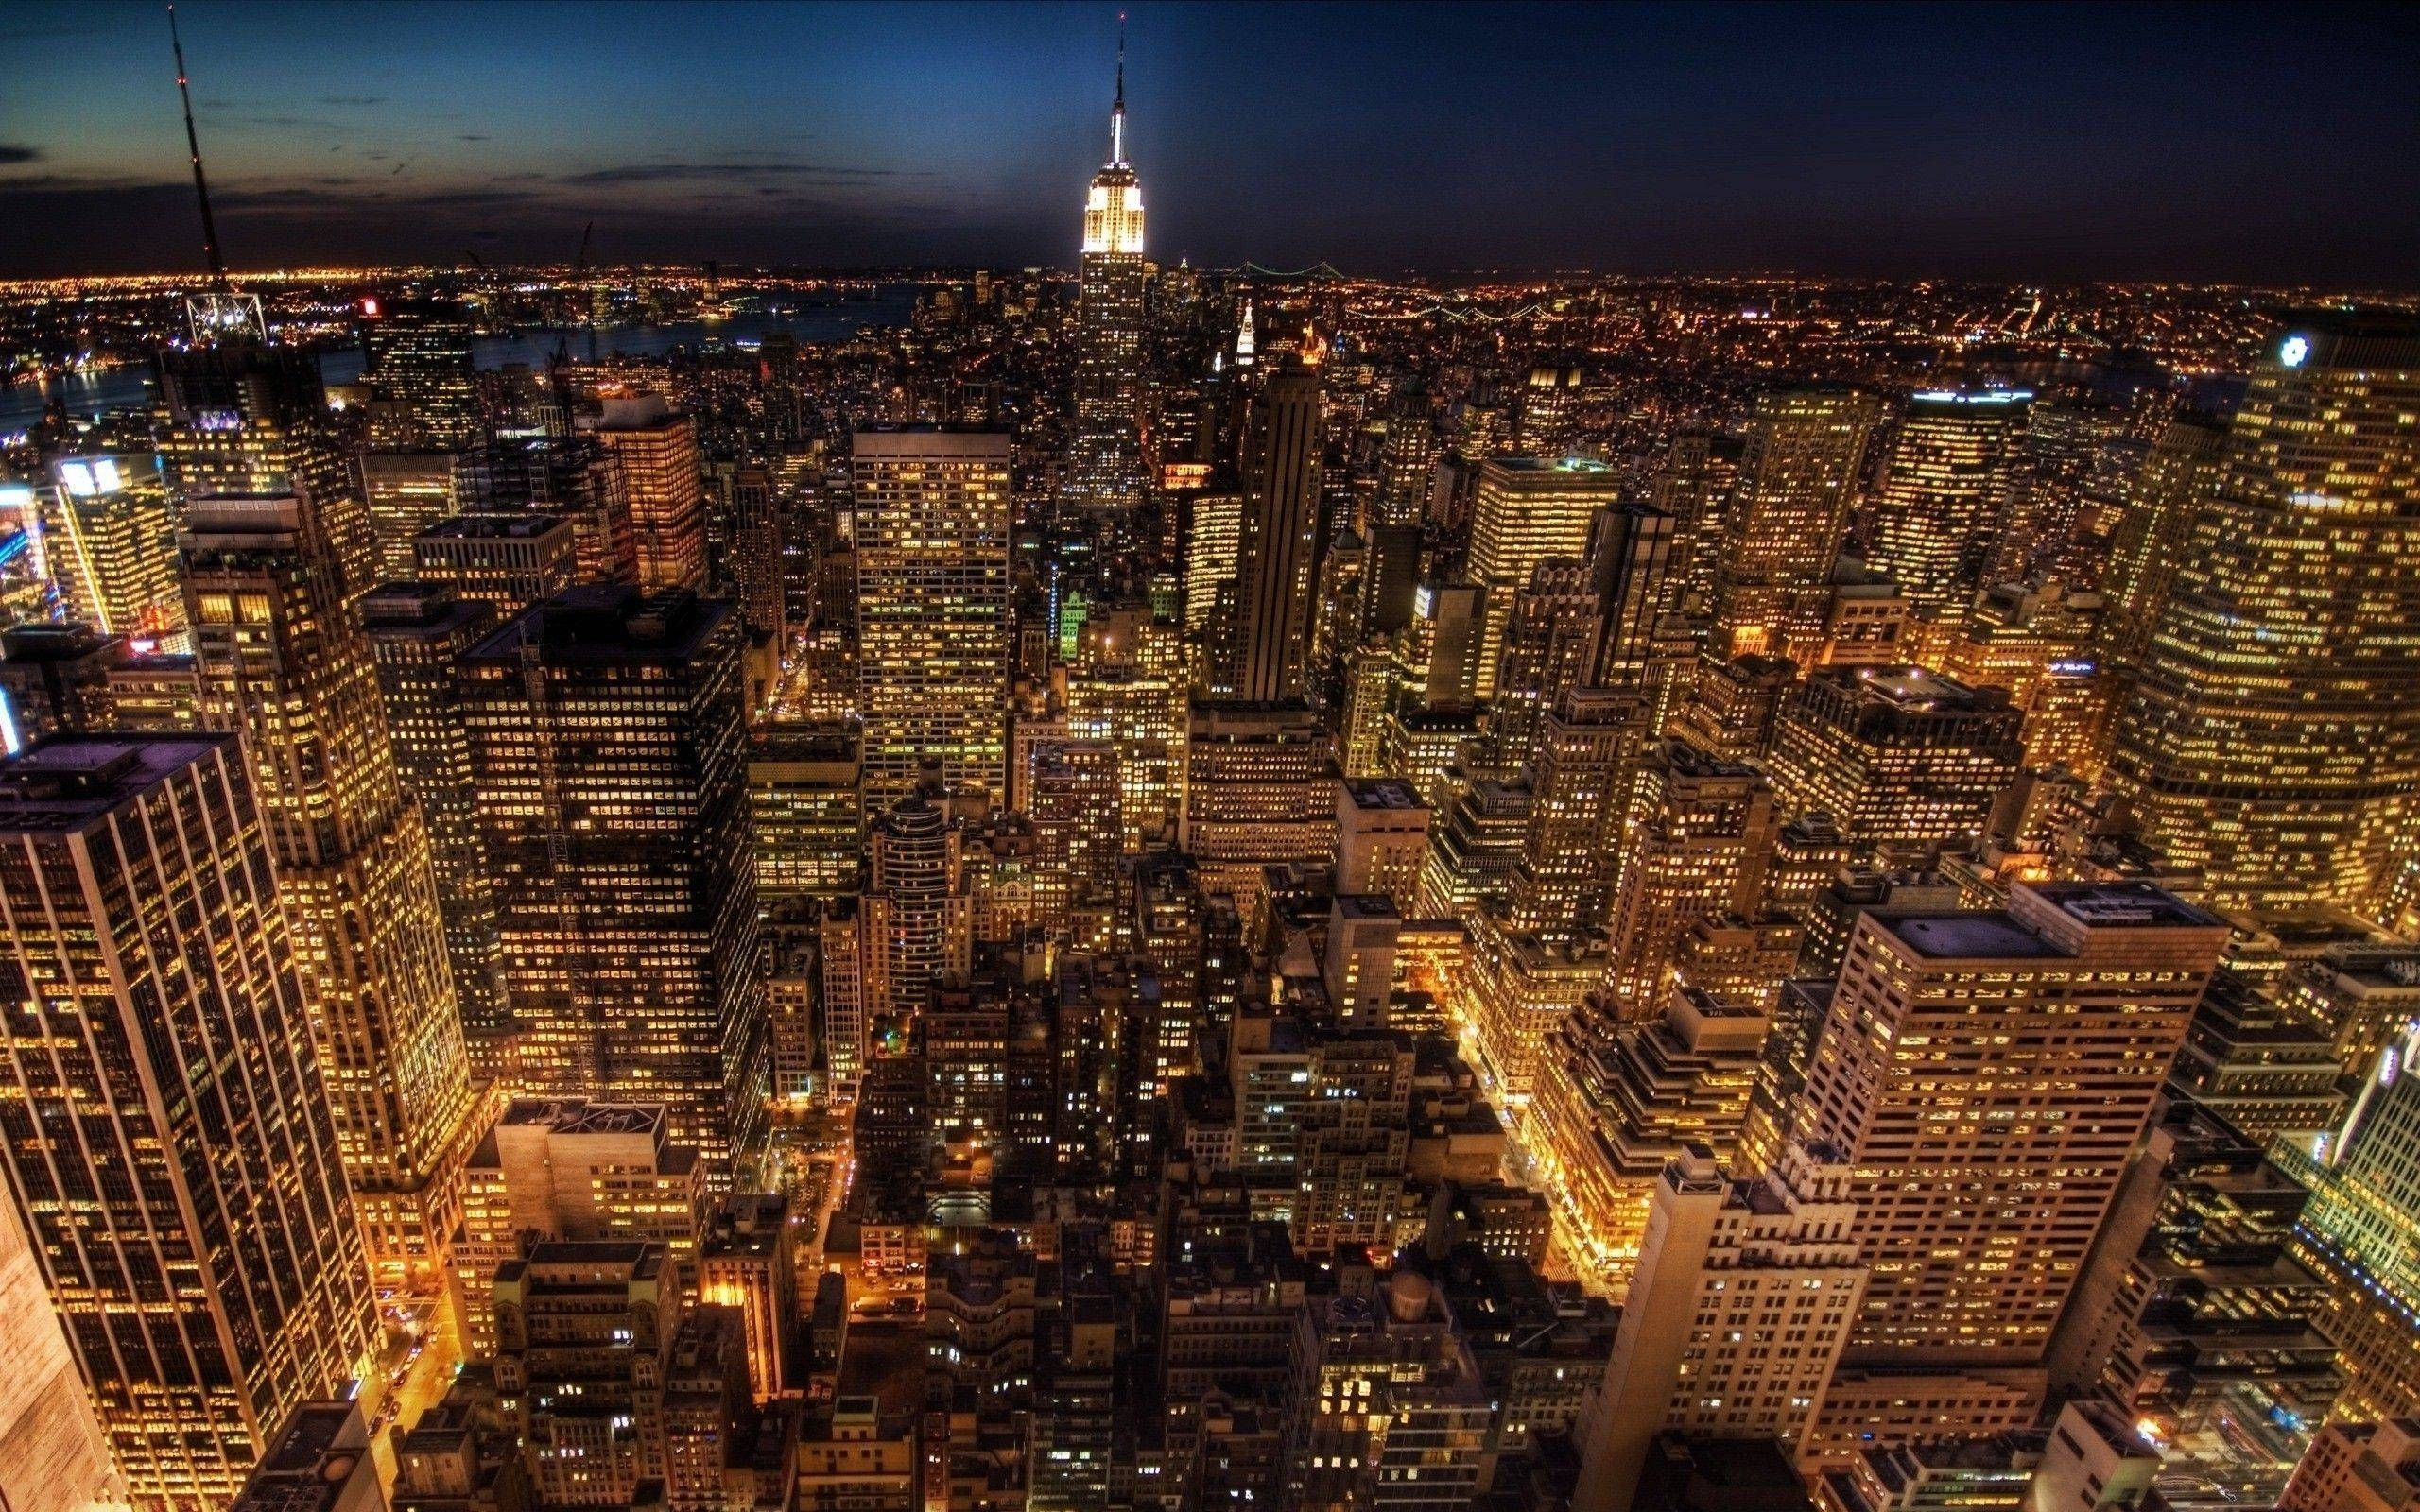 10 Best New York City Night Hd Wallpapers FULL HD 1080p For